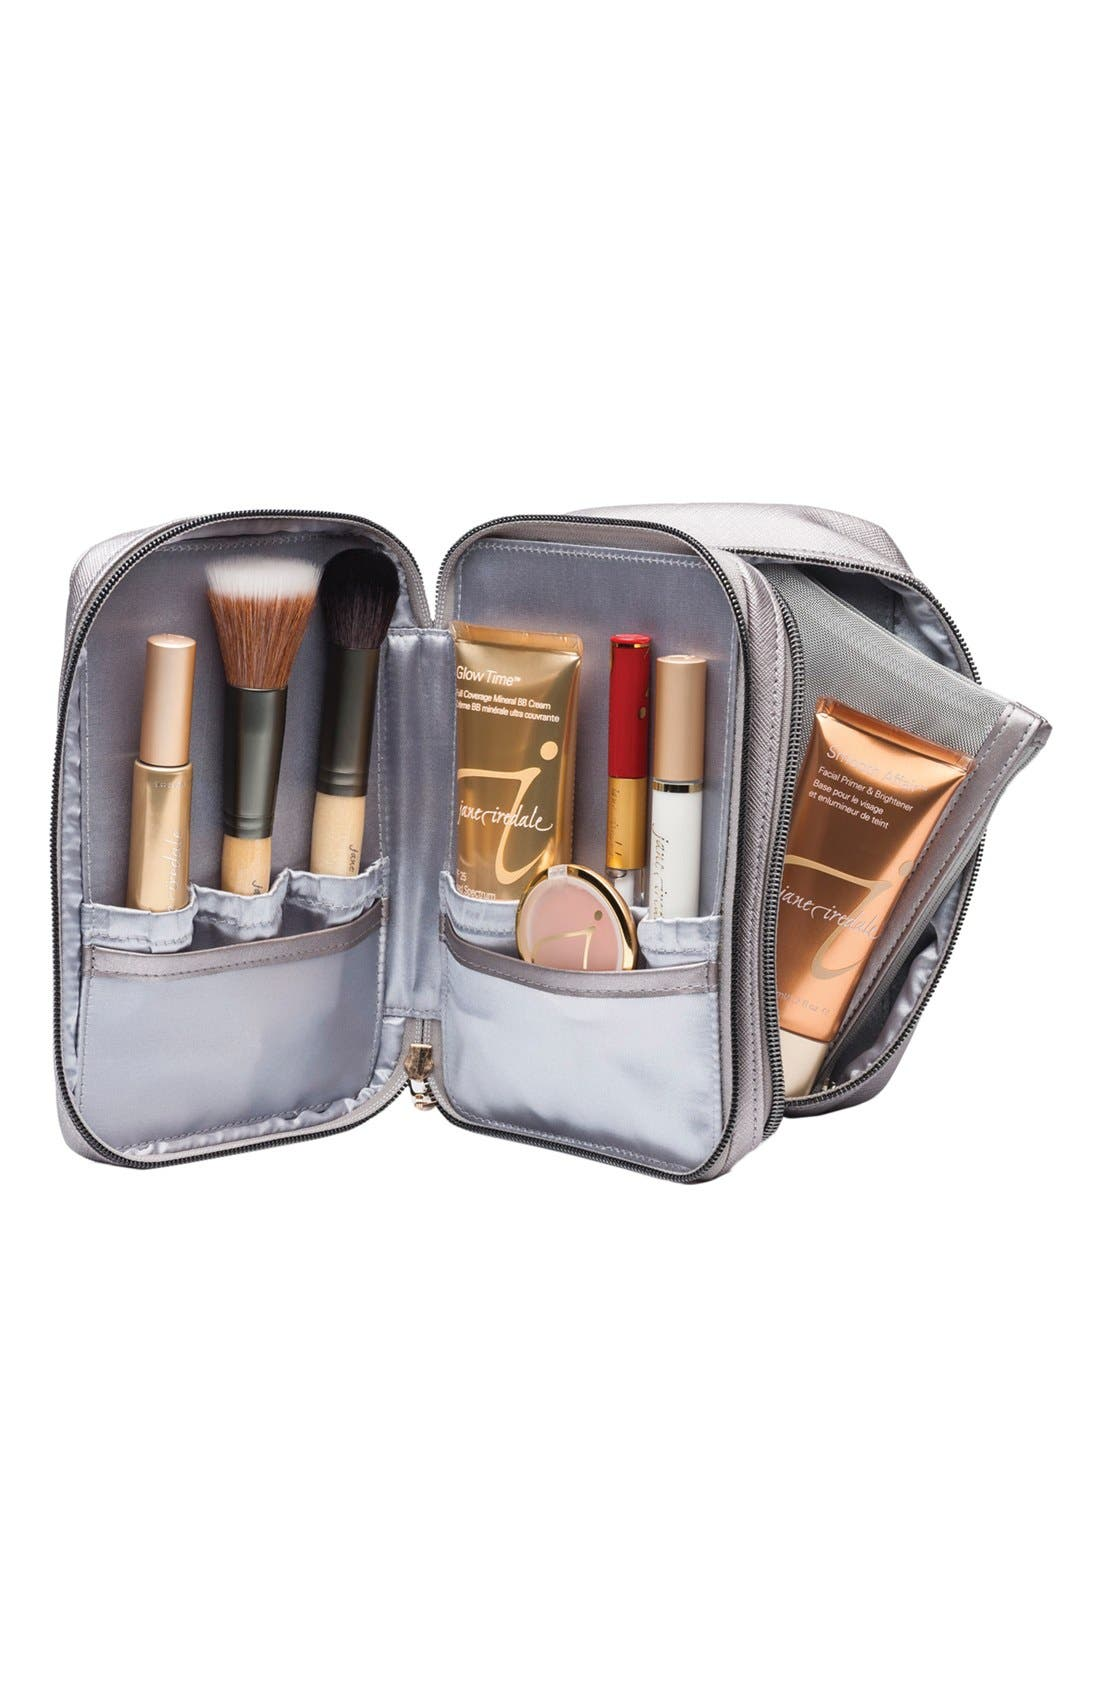 Deluxe Mirrored Cosmetics Bag,                             Alternate thumbnail 2, color,                             000